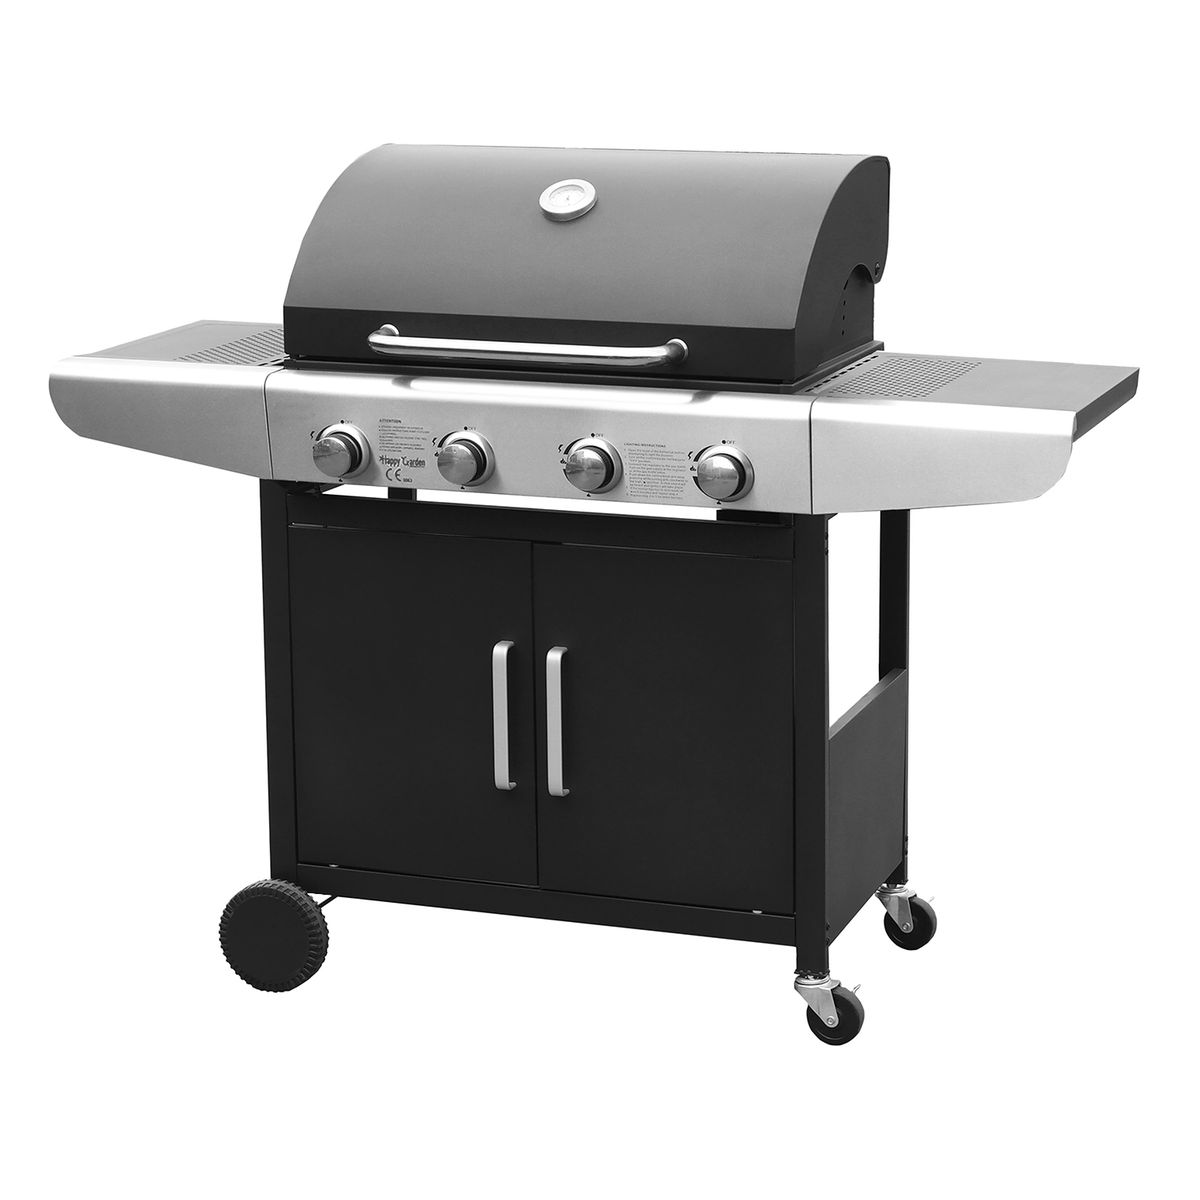 Redoute Meubles, déco Jardin Barbecue, plancha Accessoires barbecue